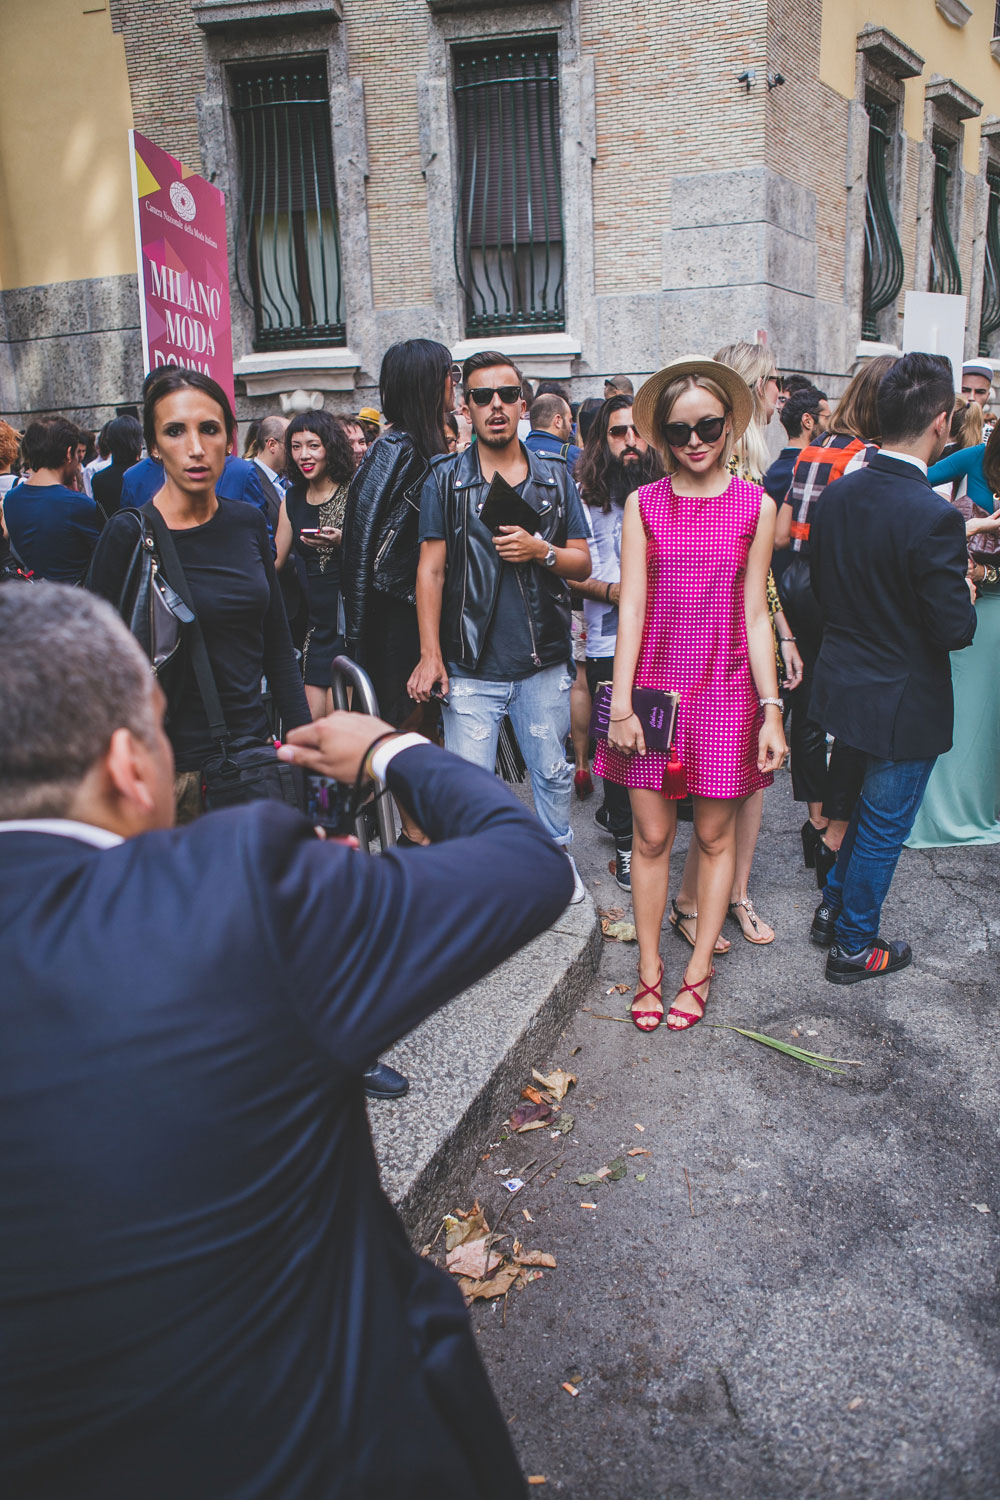 darya-kamalova-fashion-lifestyle-blogger-from-thecablook-com-on-mfw-milan-fashion-week-ss15-wearins-rafinad-dress-dolce-gabbana-shoes-catarzi-hat-celine-audrey-sunglasses-street-style-day-5-anna-dello-russo-6506